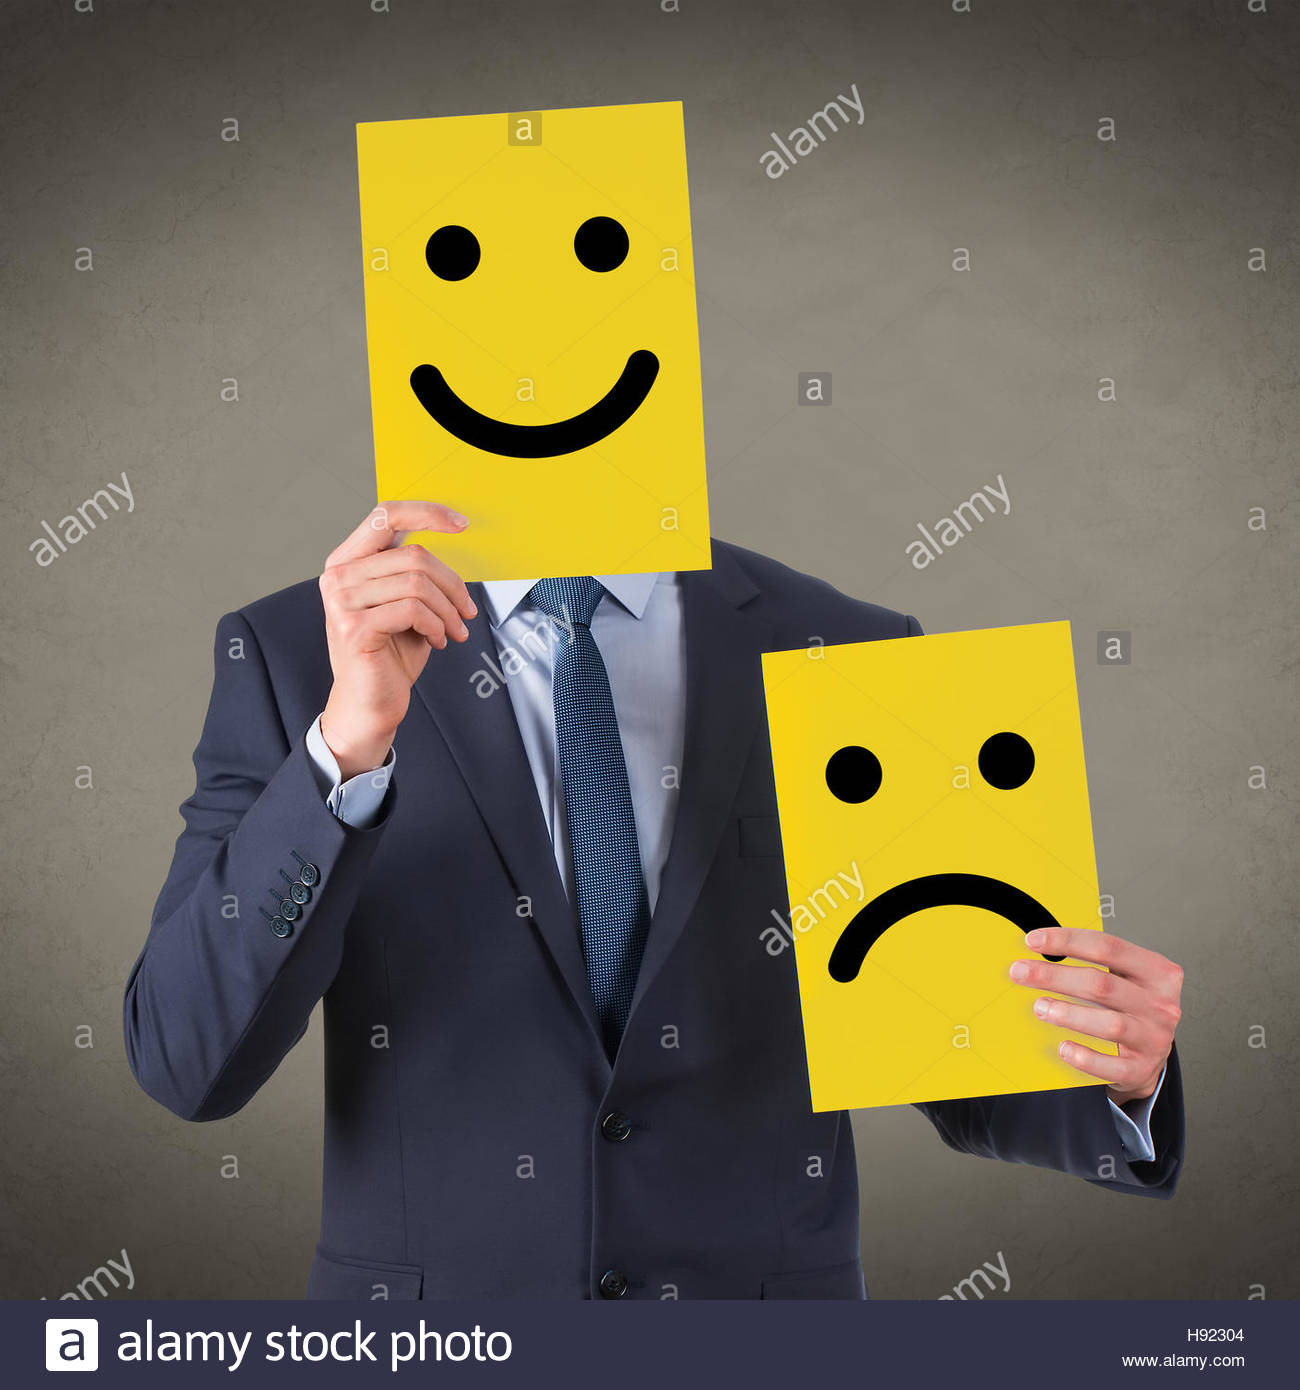 Smile Face on Yellow Cardboard - Stock Image